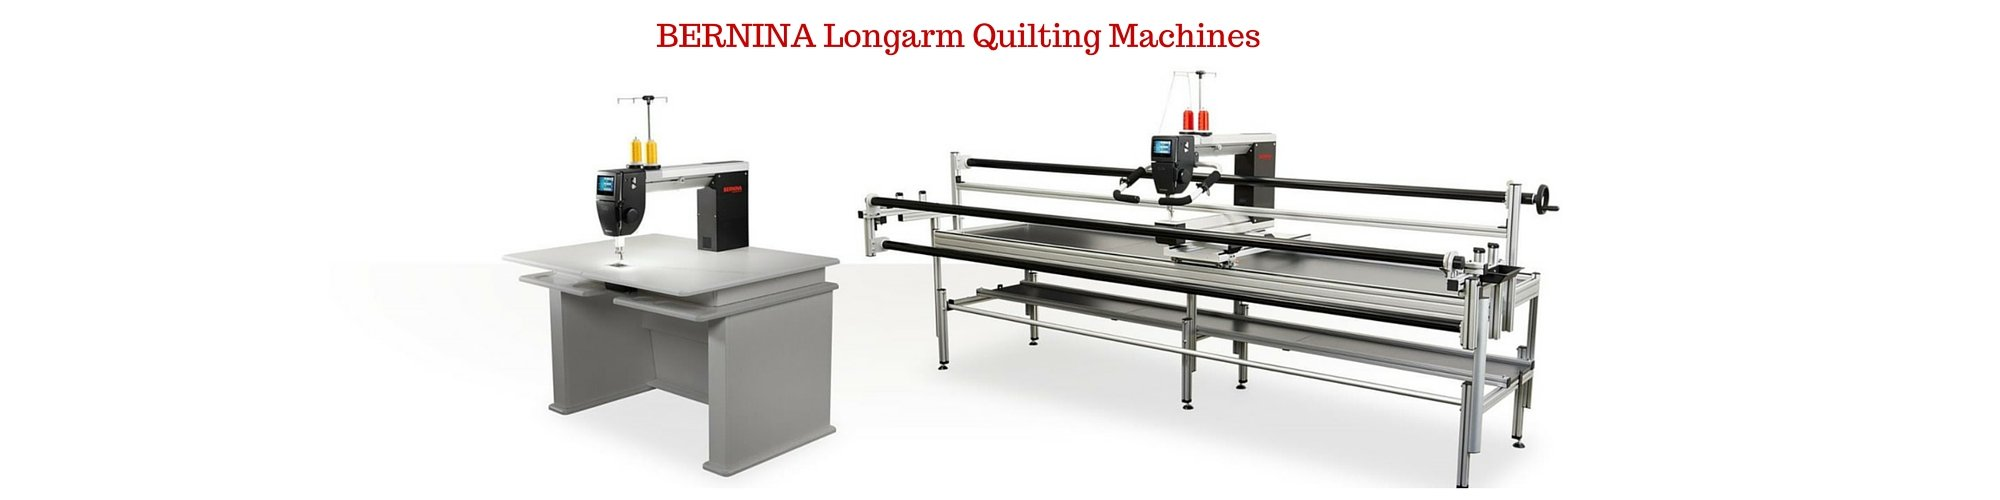 BERNINA Longarm Quilting Machines at Lola Pink Fabrics